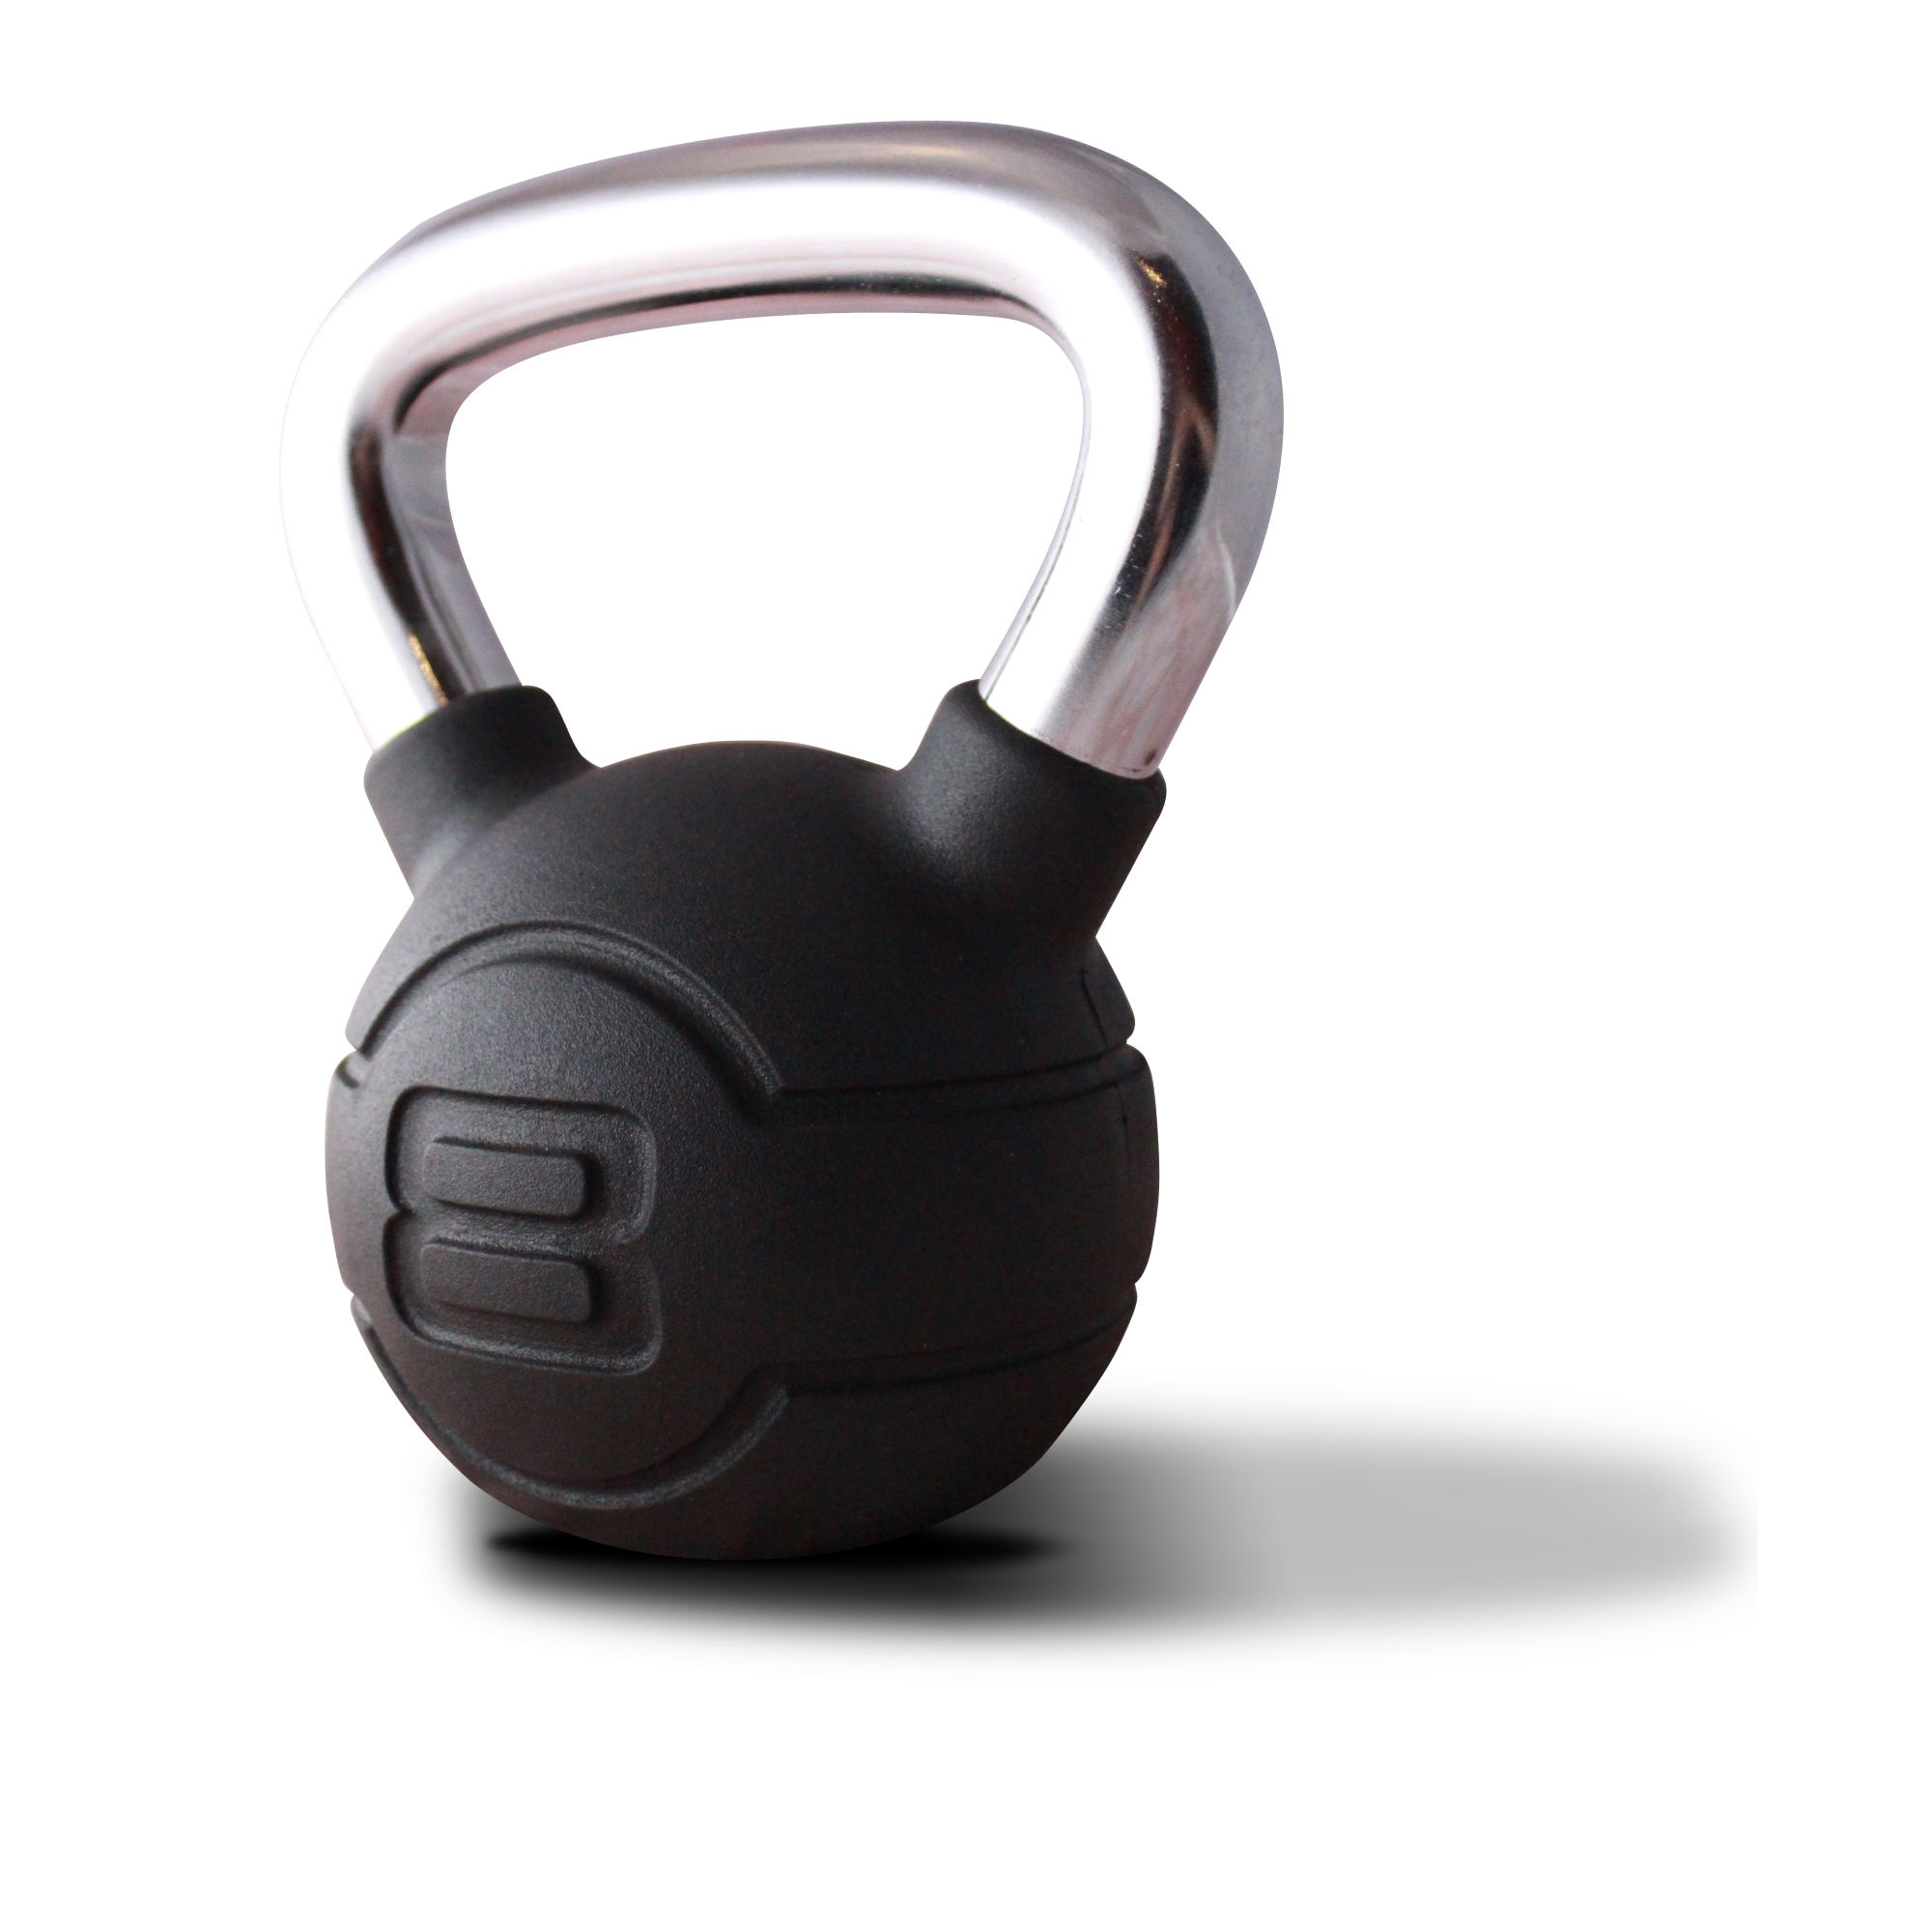 Jordan Black Rubber & Chrome Kettlebell 18kg